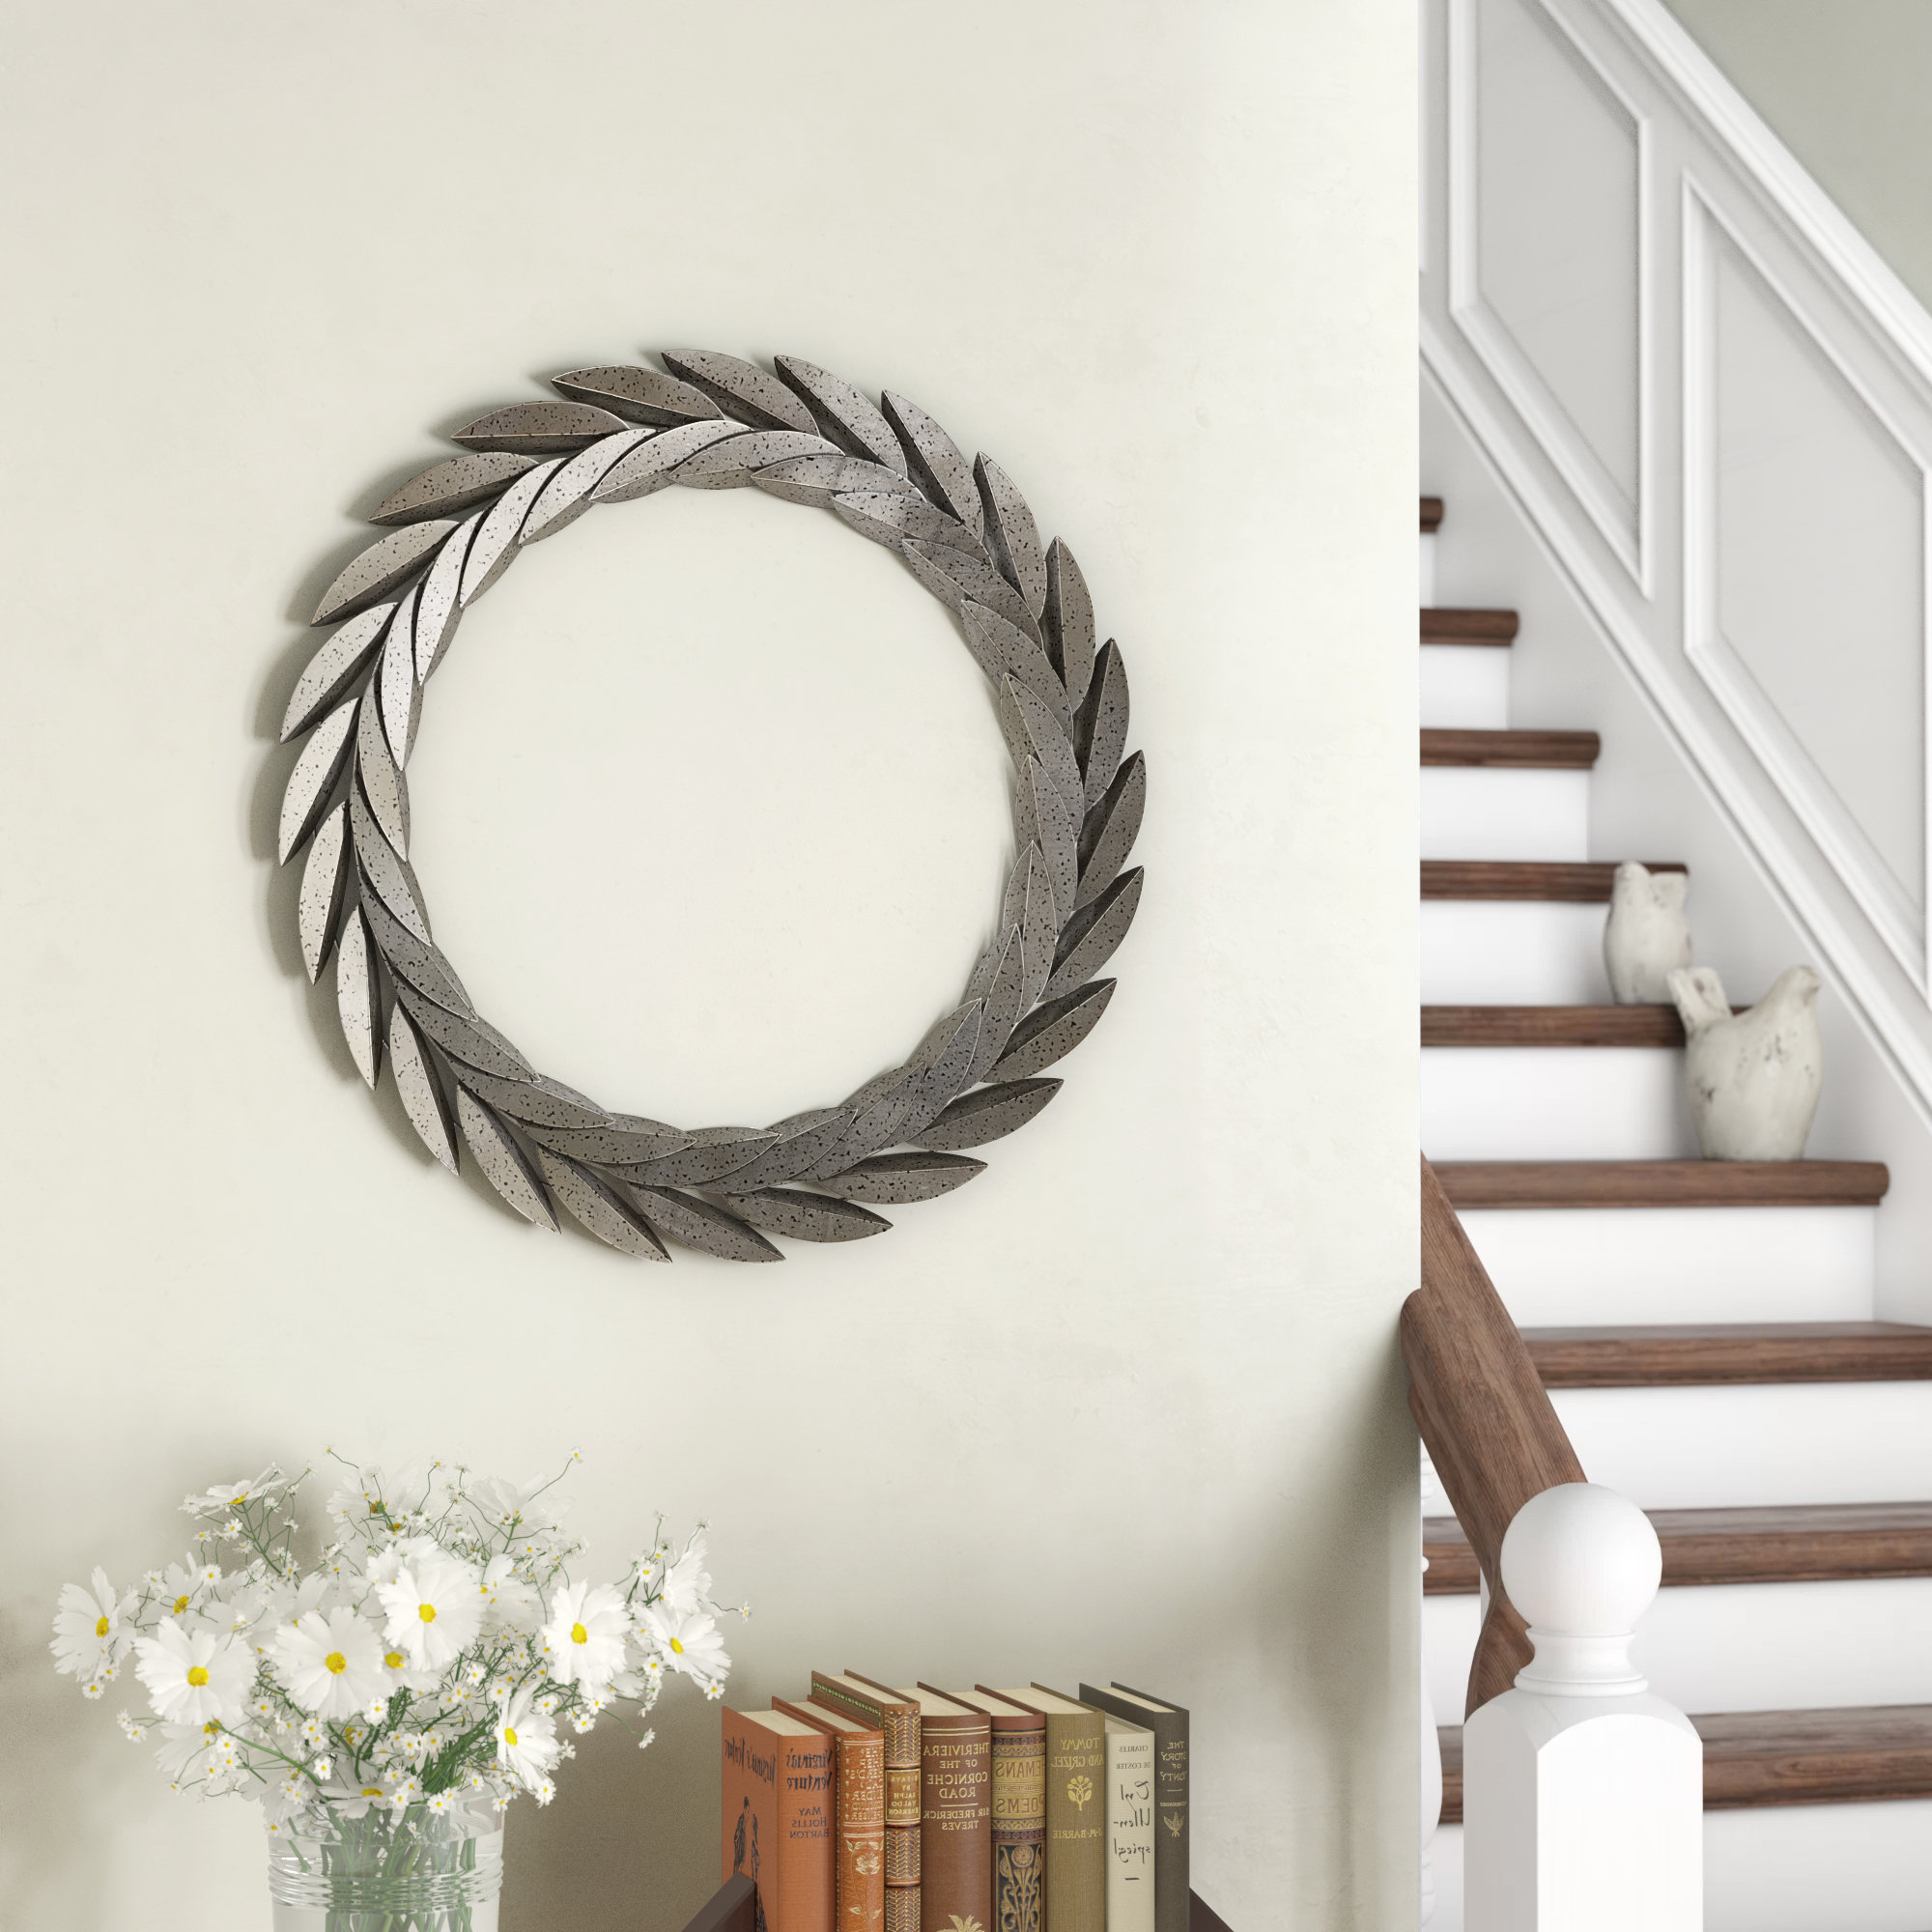 Olive/gray Metal Wall Decor Regarding Trendy Gracie Oaks Metal Wreath Wall Décor & Reviews (View 14 of 20)